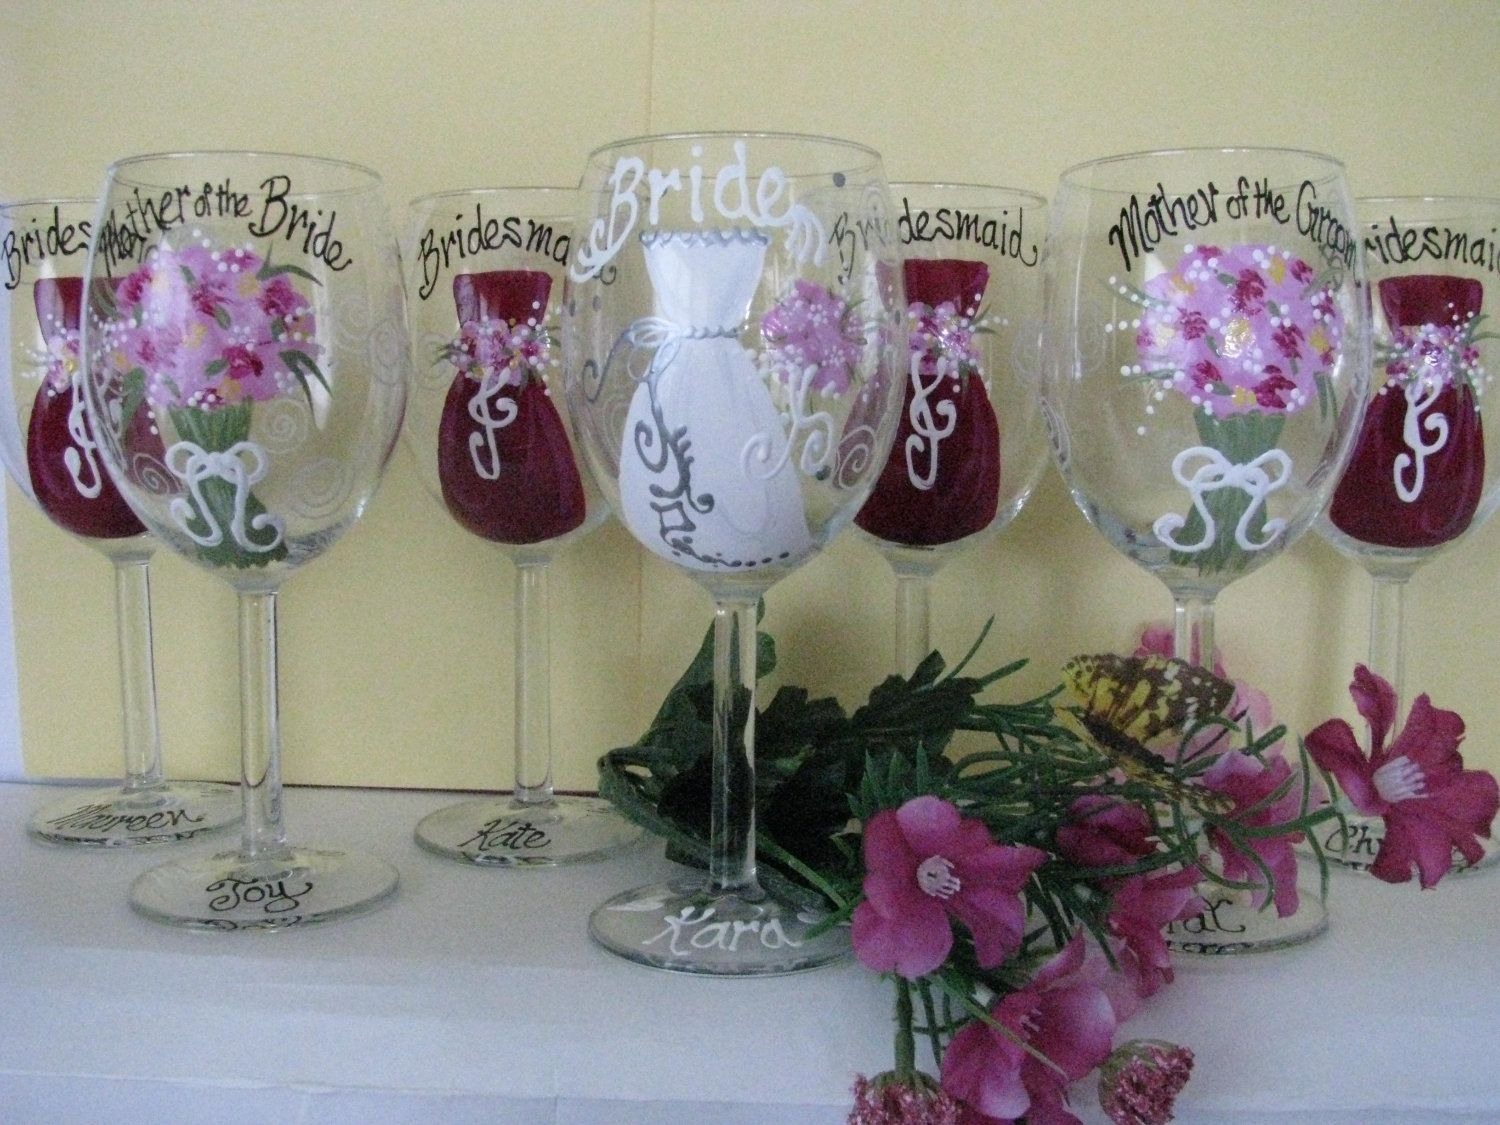 How to decorate wine glasses for bridesmaids - Glass Hand Painted Wine Glasses Ideas Three Bridesmaid